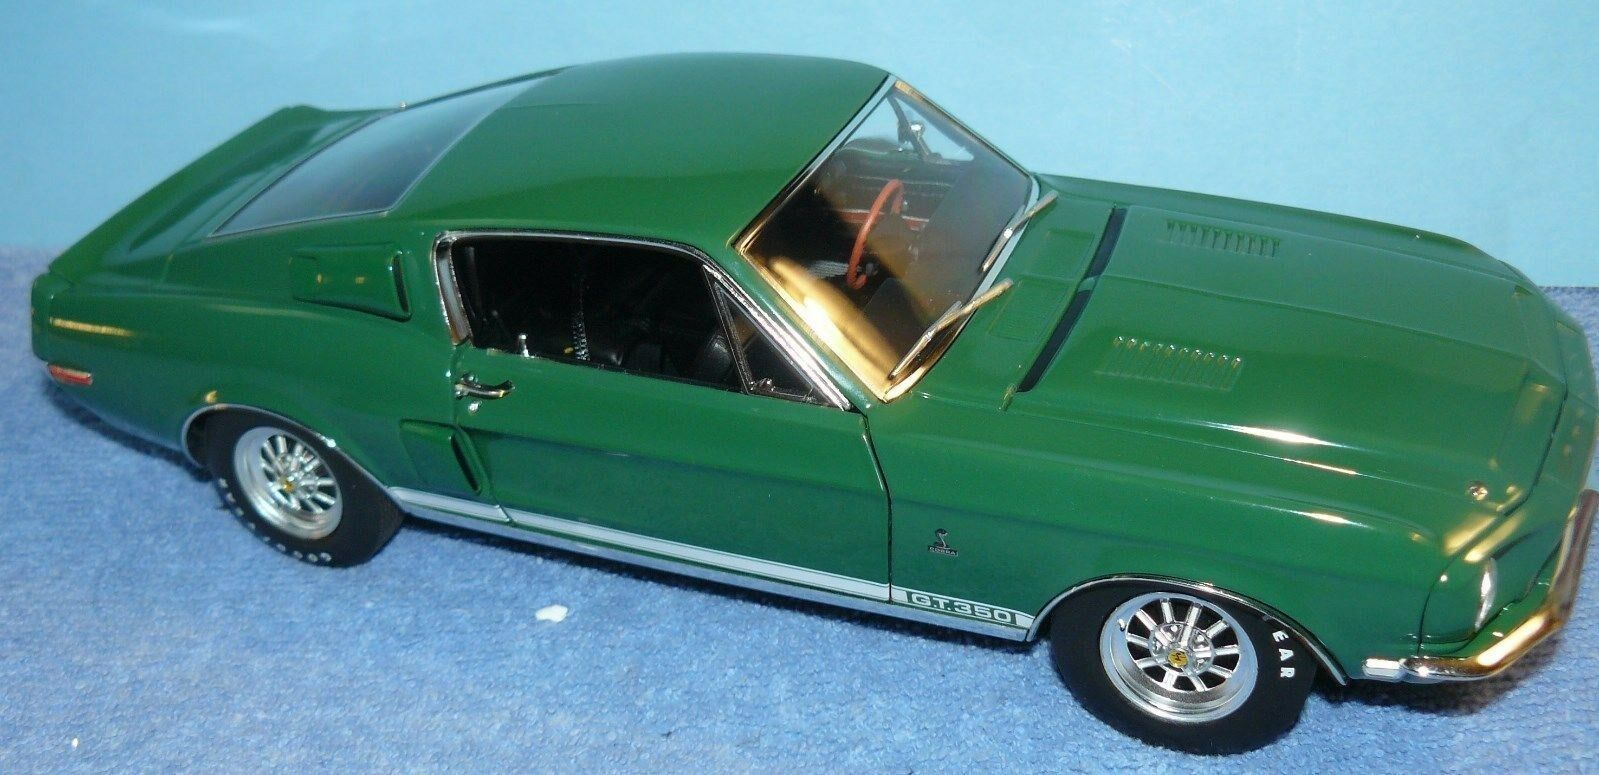 1   18,   1968er ford shelby mustang gt 350 wt 7018 ein diecast modell